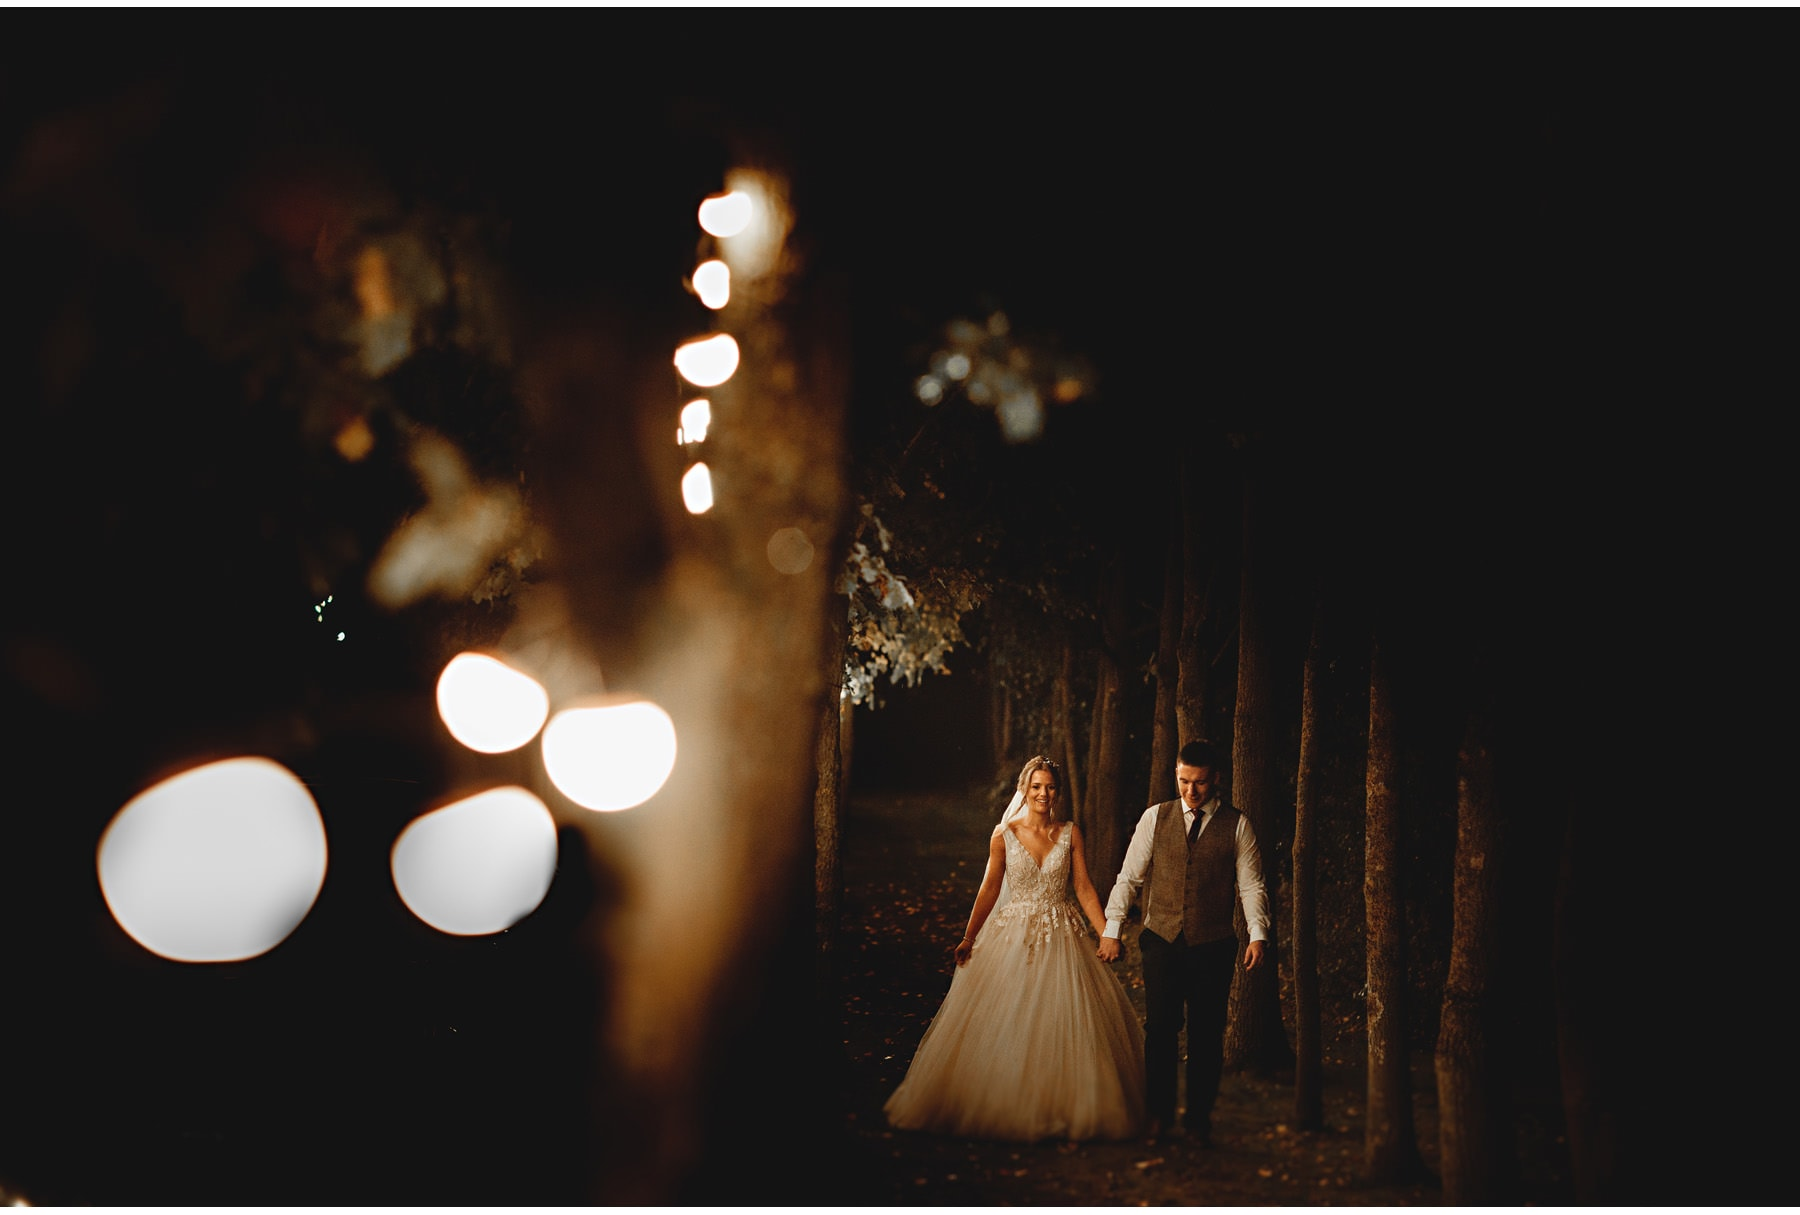 the bride & groom walking by the festoon lights